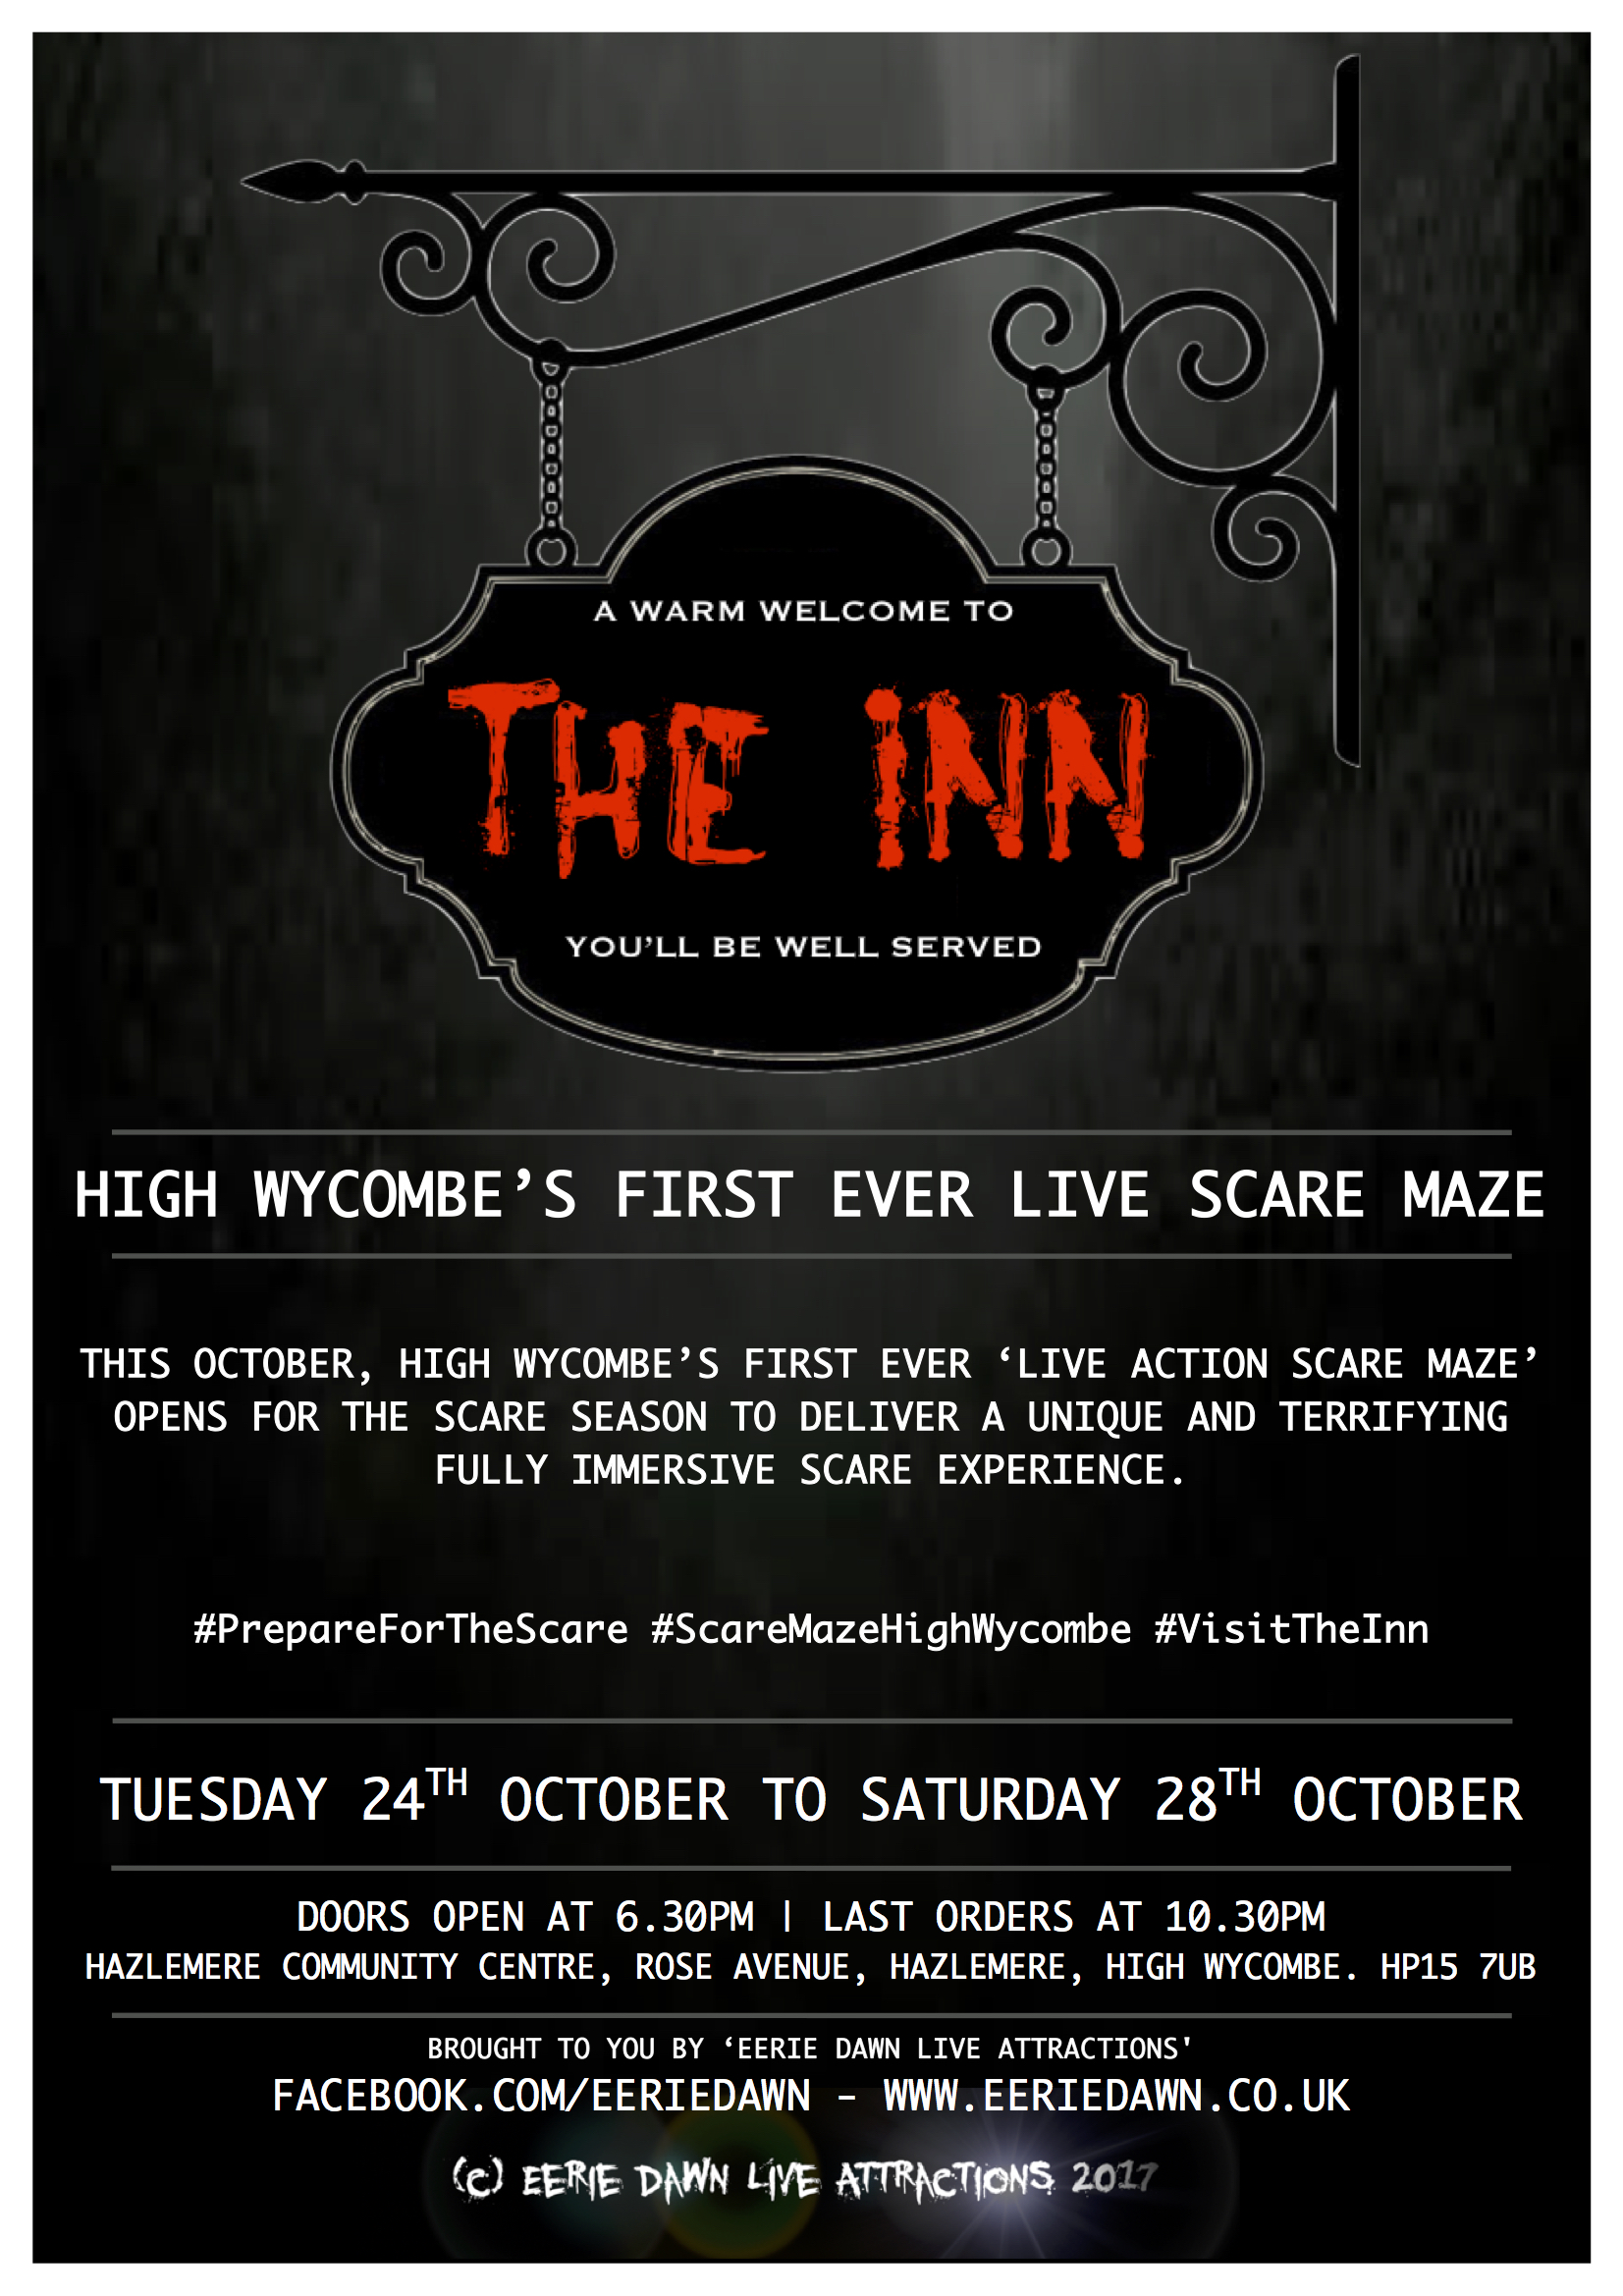 The Inn - Scare Maze